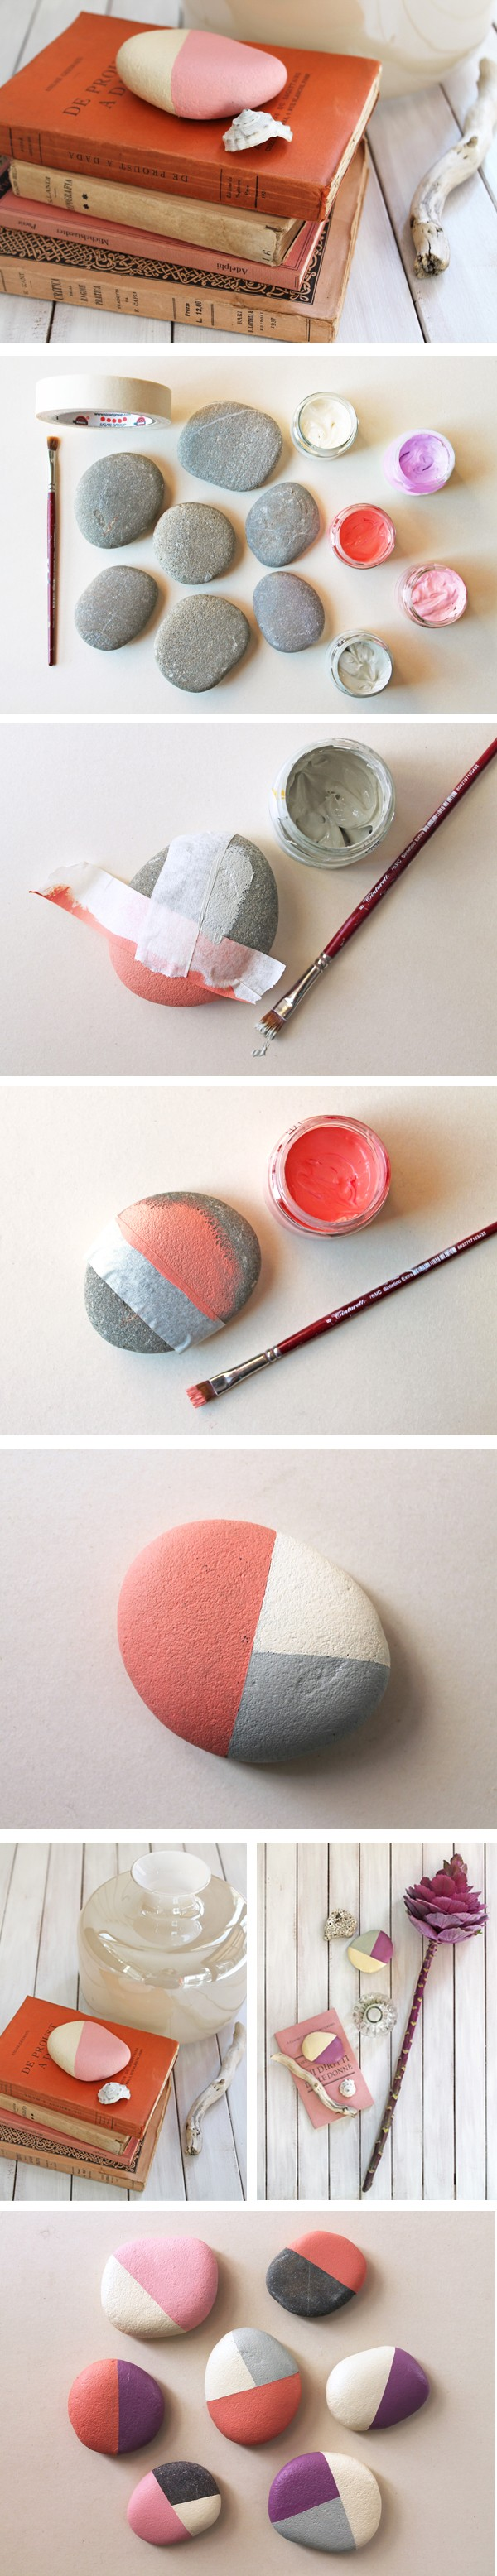 Brilliant idea of painted river rocks as DIY paper weights and easy home decor